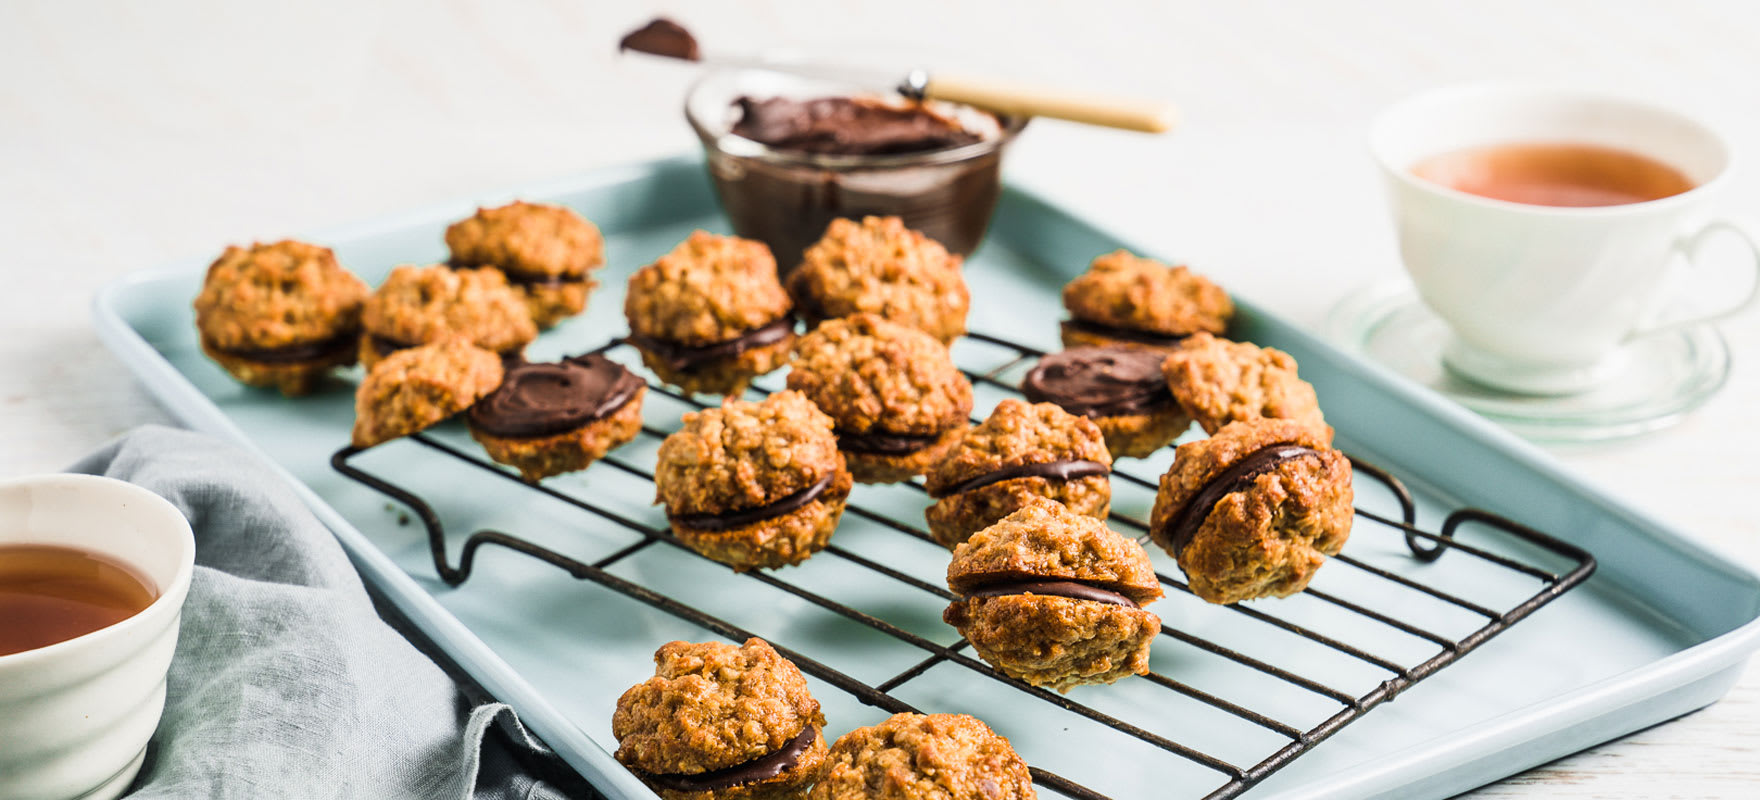 Chocolate, Peanut Butter & Oat Biscuit Sandwich image 1